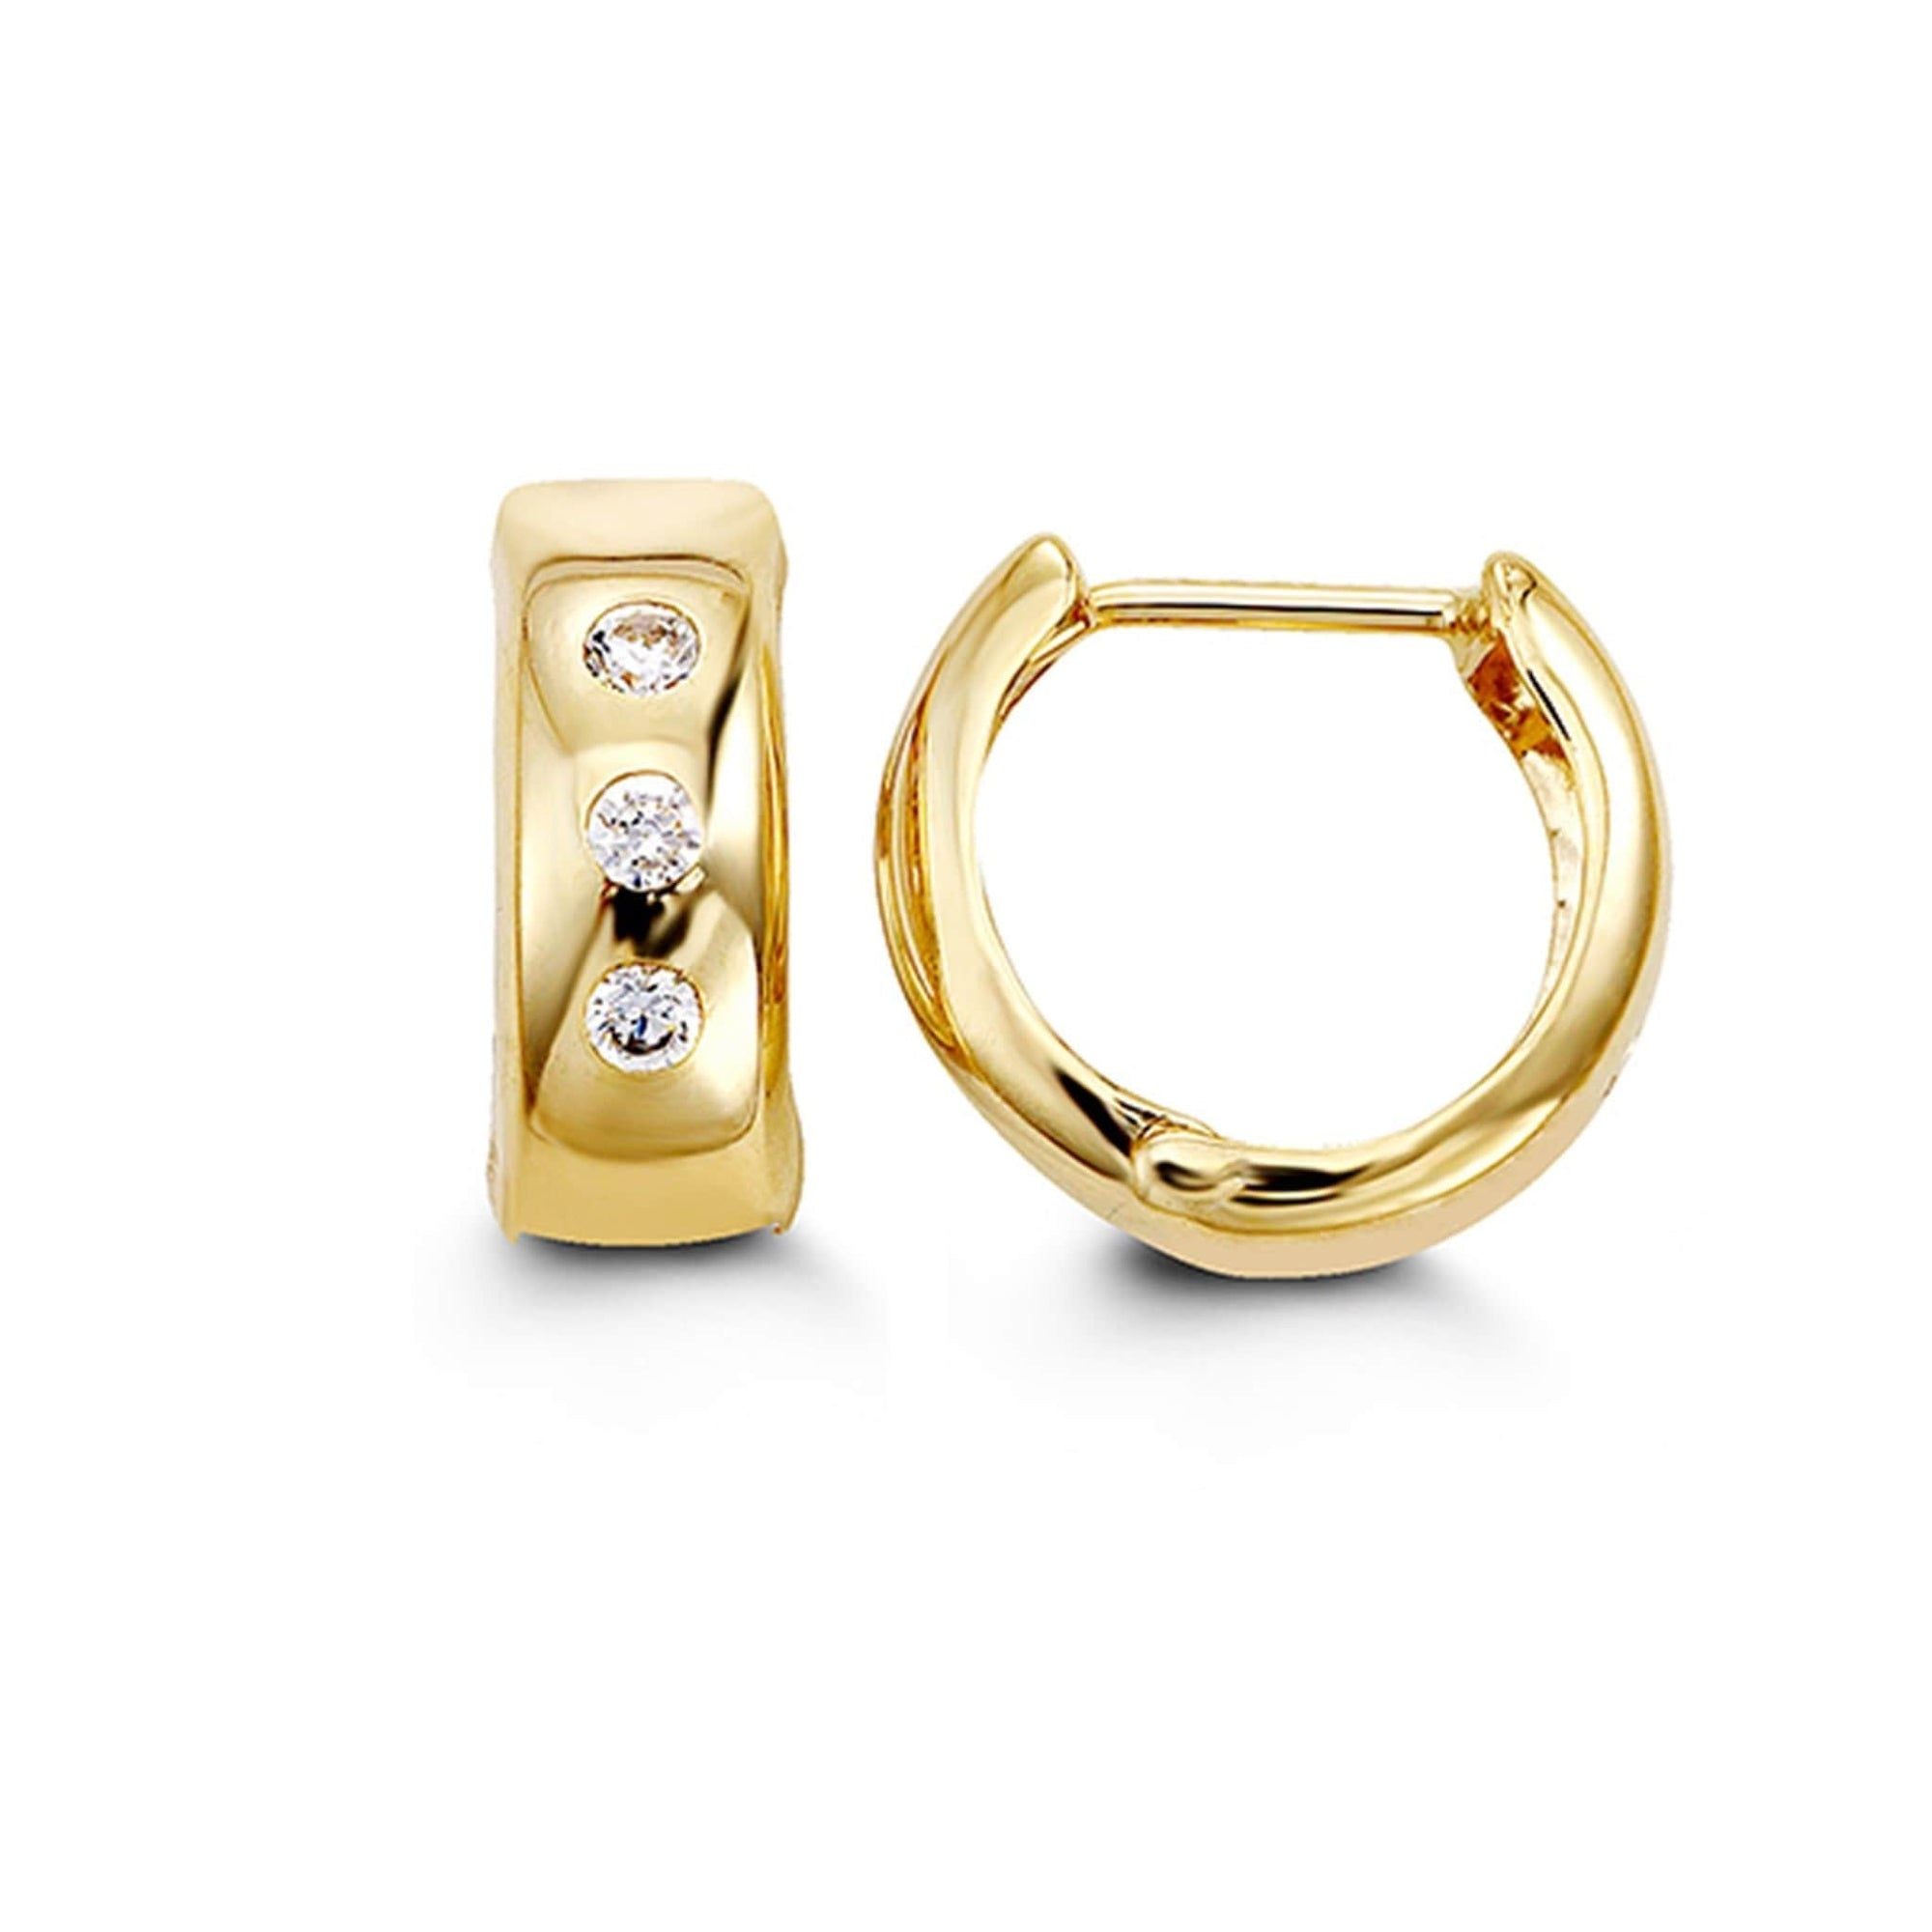 10K Yellow Gold Cubic Zirconia Huggie Hoop Earrings at Arman's Jewellers